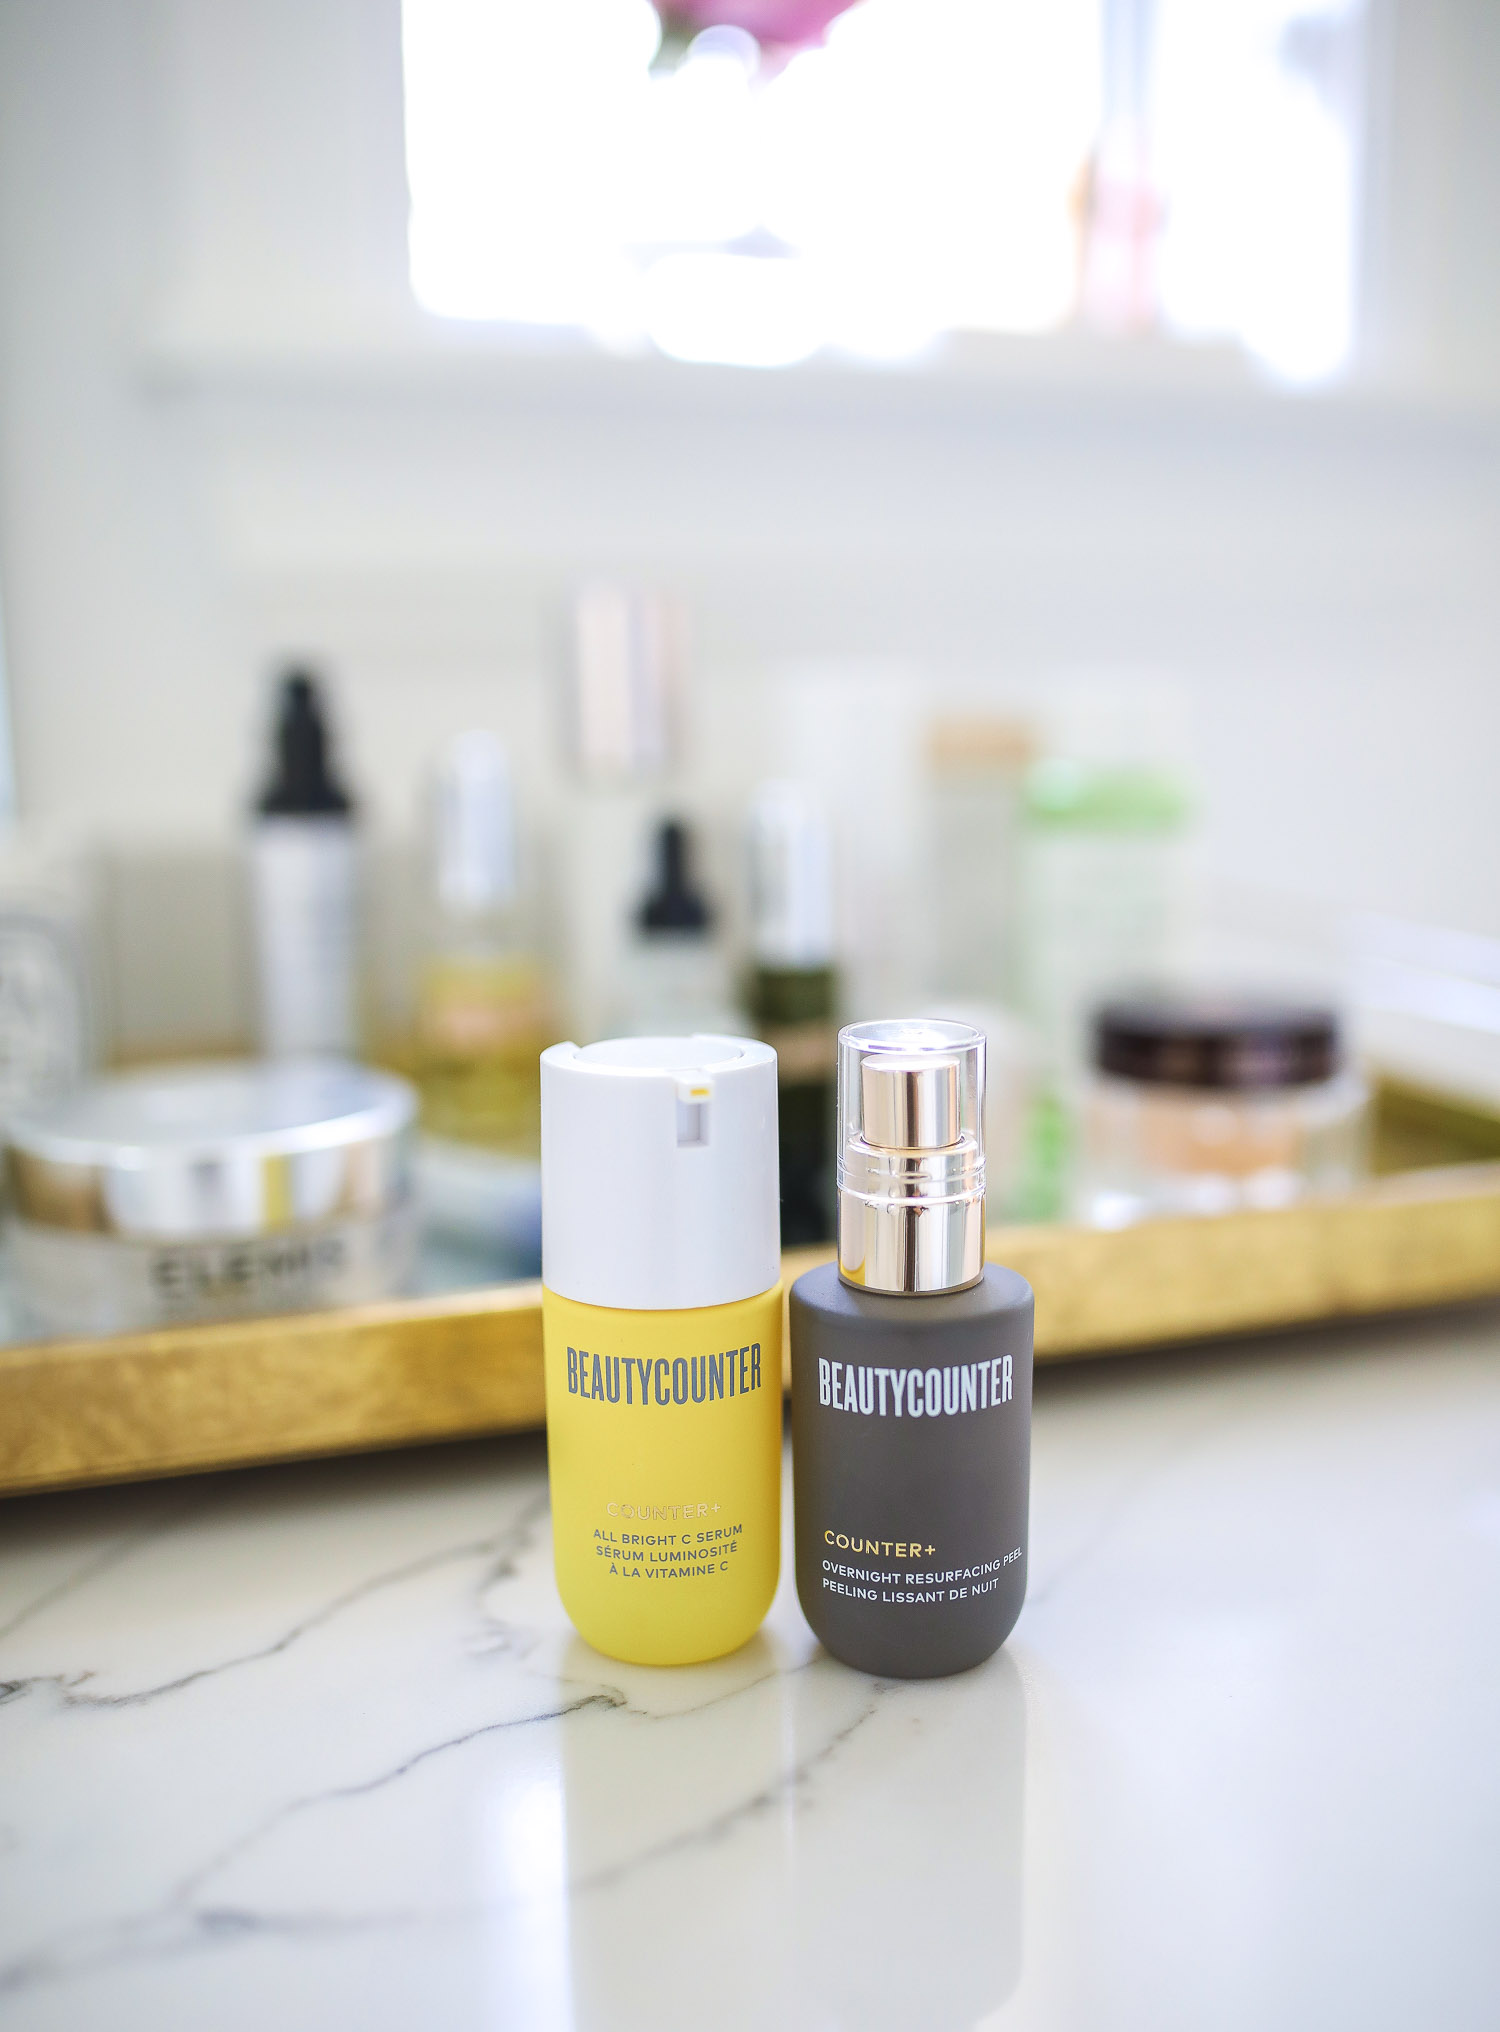 beauty counter review vitamin C, Beauty Counter Sephora overnight resurfacing gel, emily ann gemma |  Beautycounter Products by popular US beauty blog, The Sweetest Thing: image of Beautycounter Counter+ Overnight Resurfacing Peel and Beautycounter Beautycounter Counter+ All Bright C Serum.